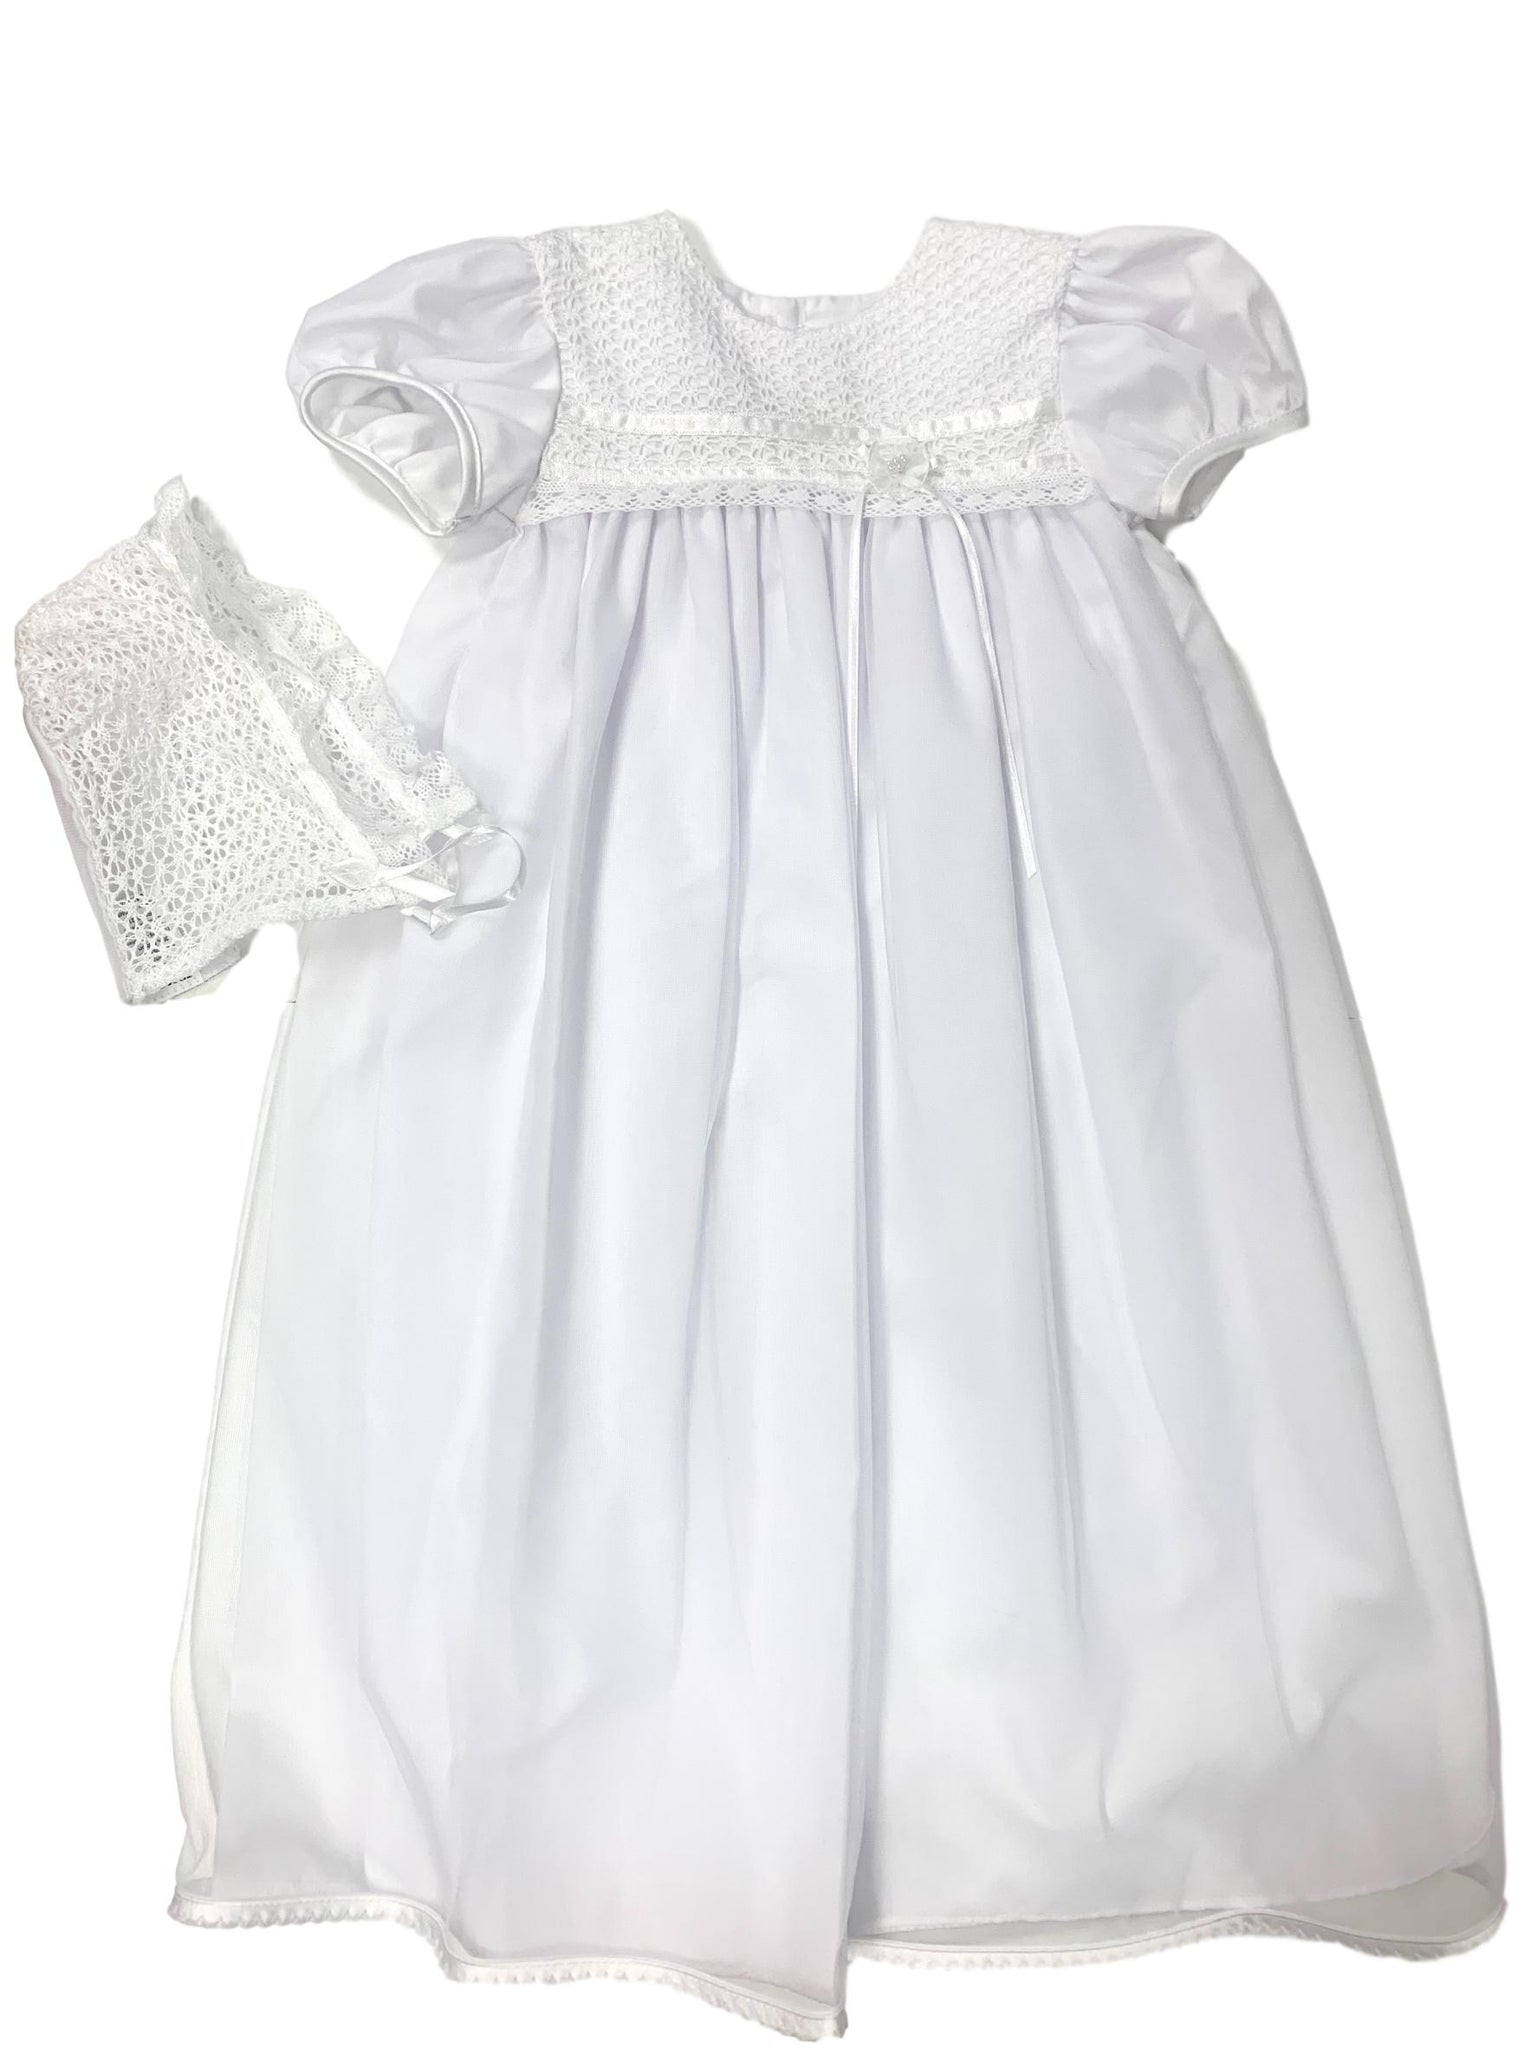 Christening Dress by Little Things Mean A lot